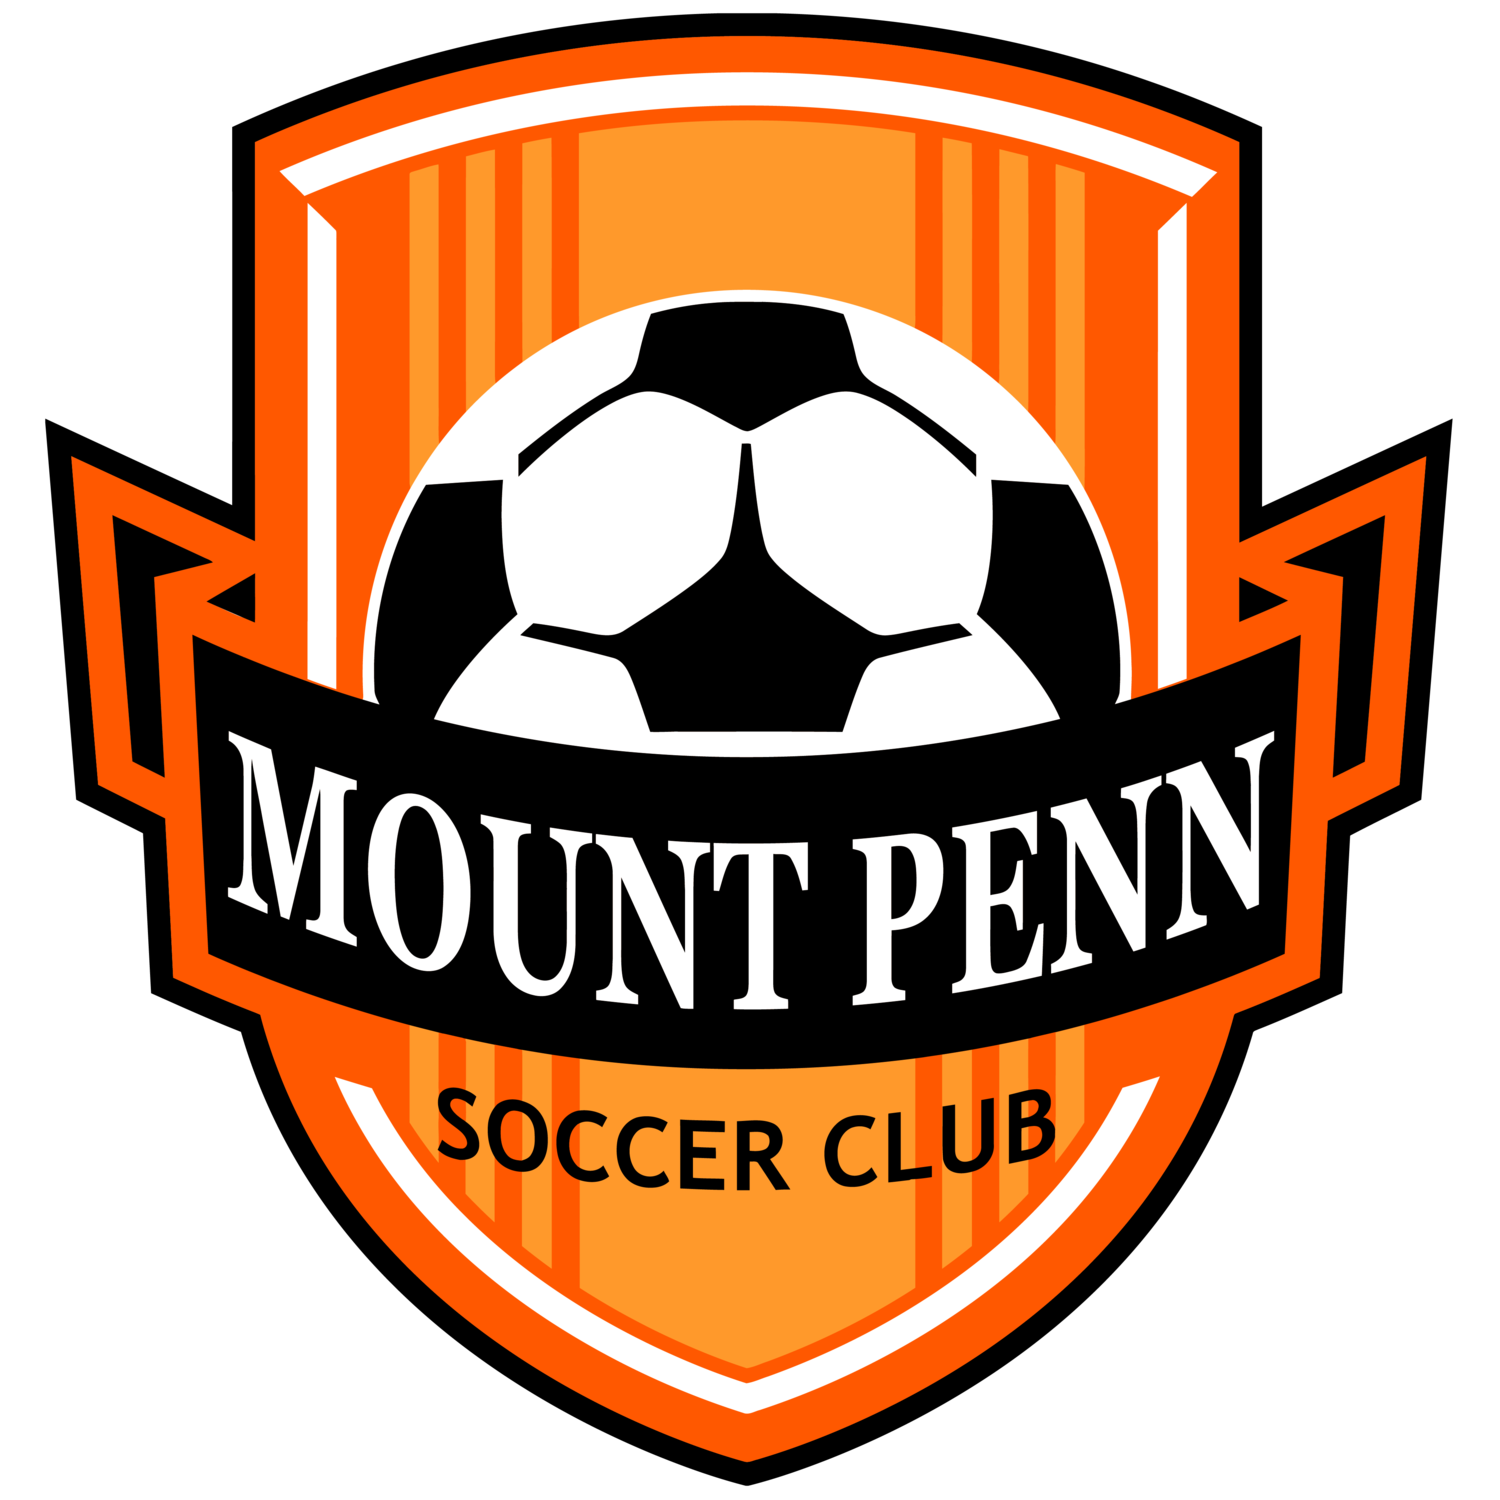 Mt Penn Soccer Club